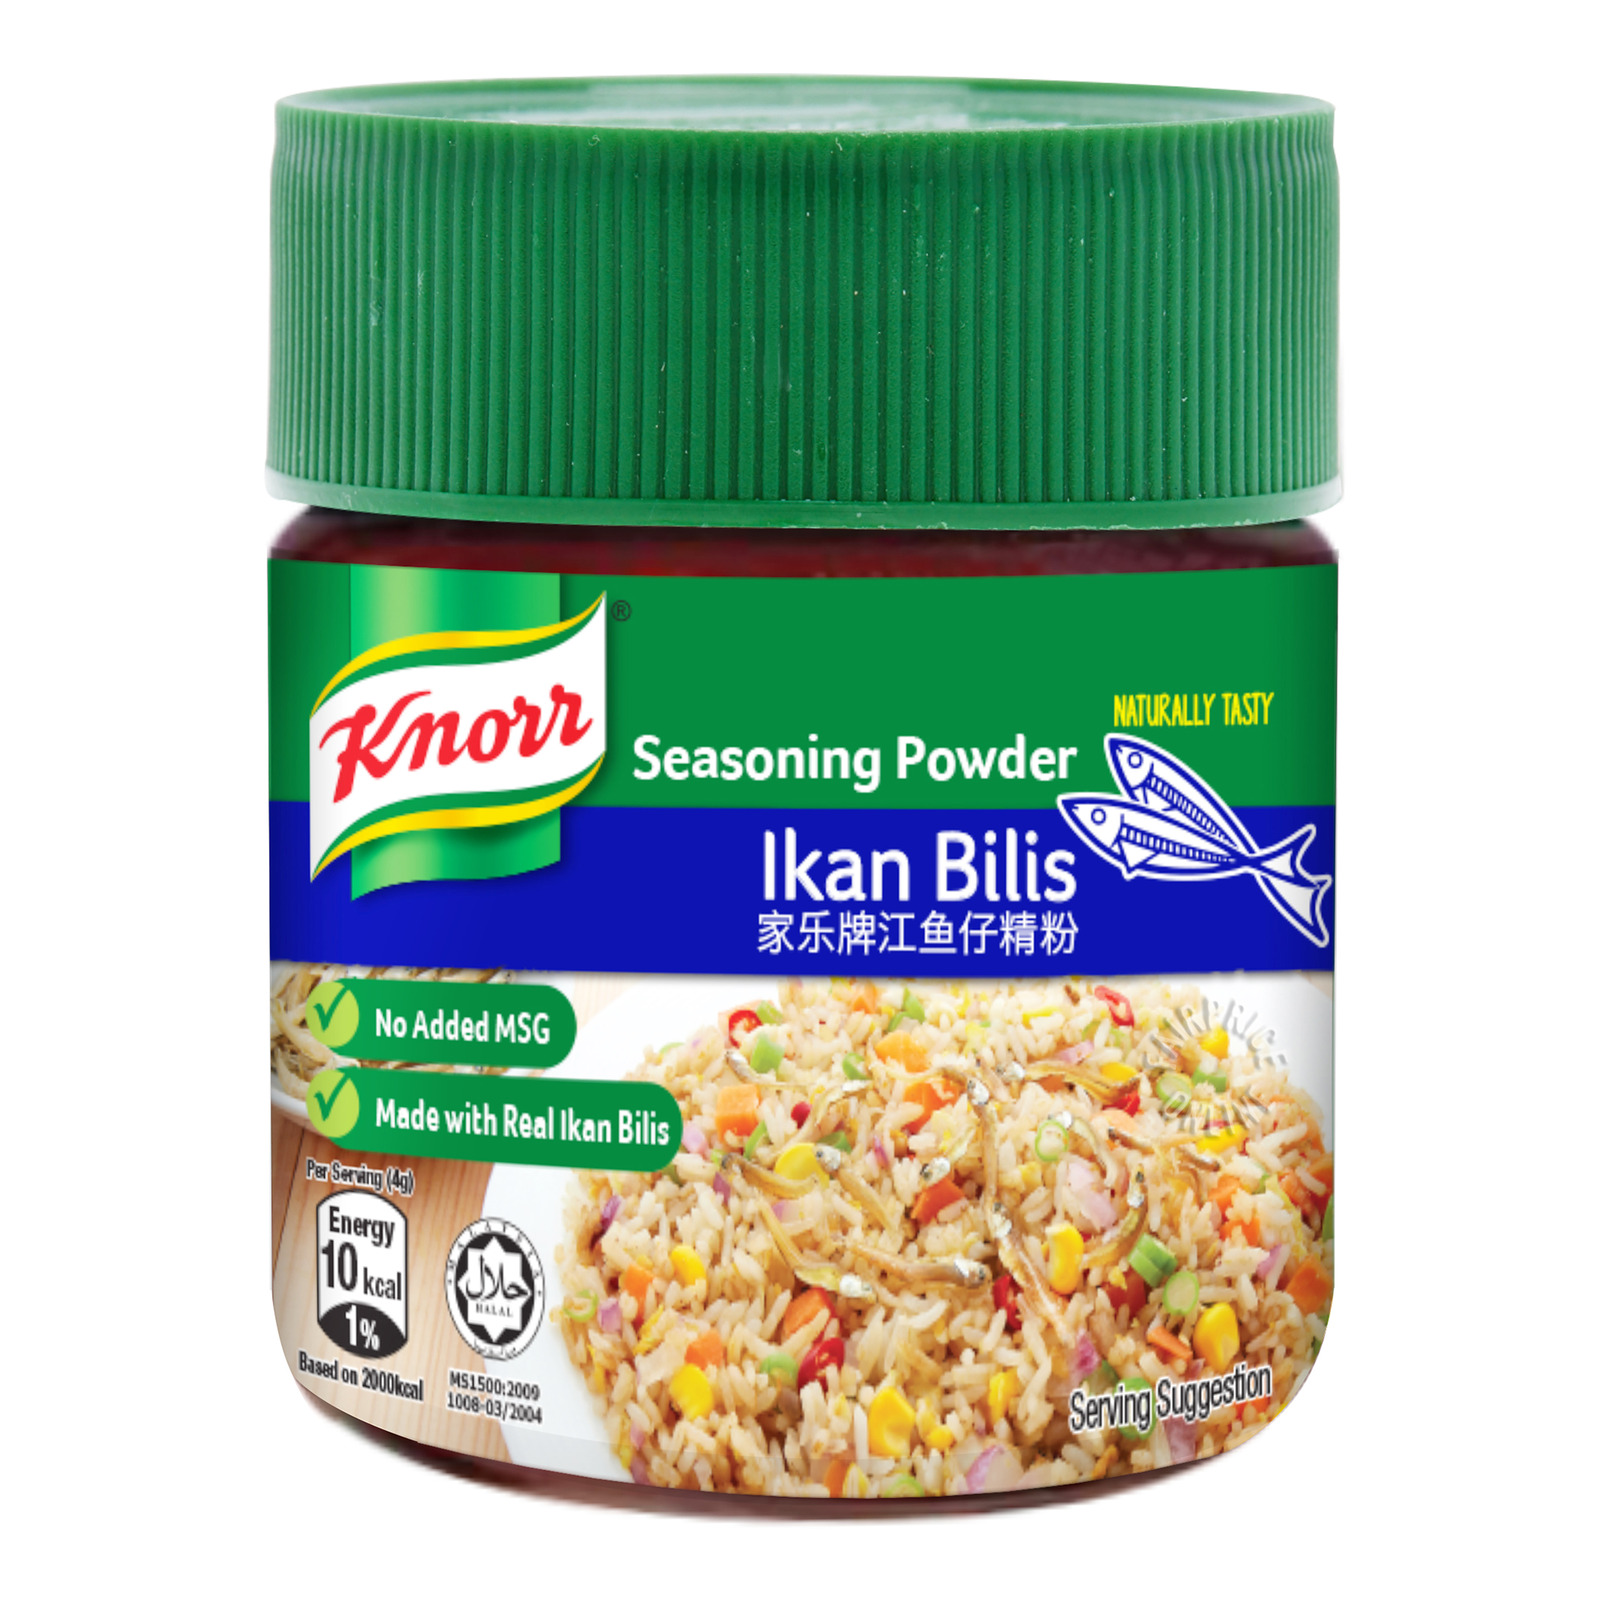 Knorr Seasoning Powder - Ikan Bilis (No Added MSG)